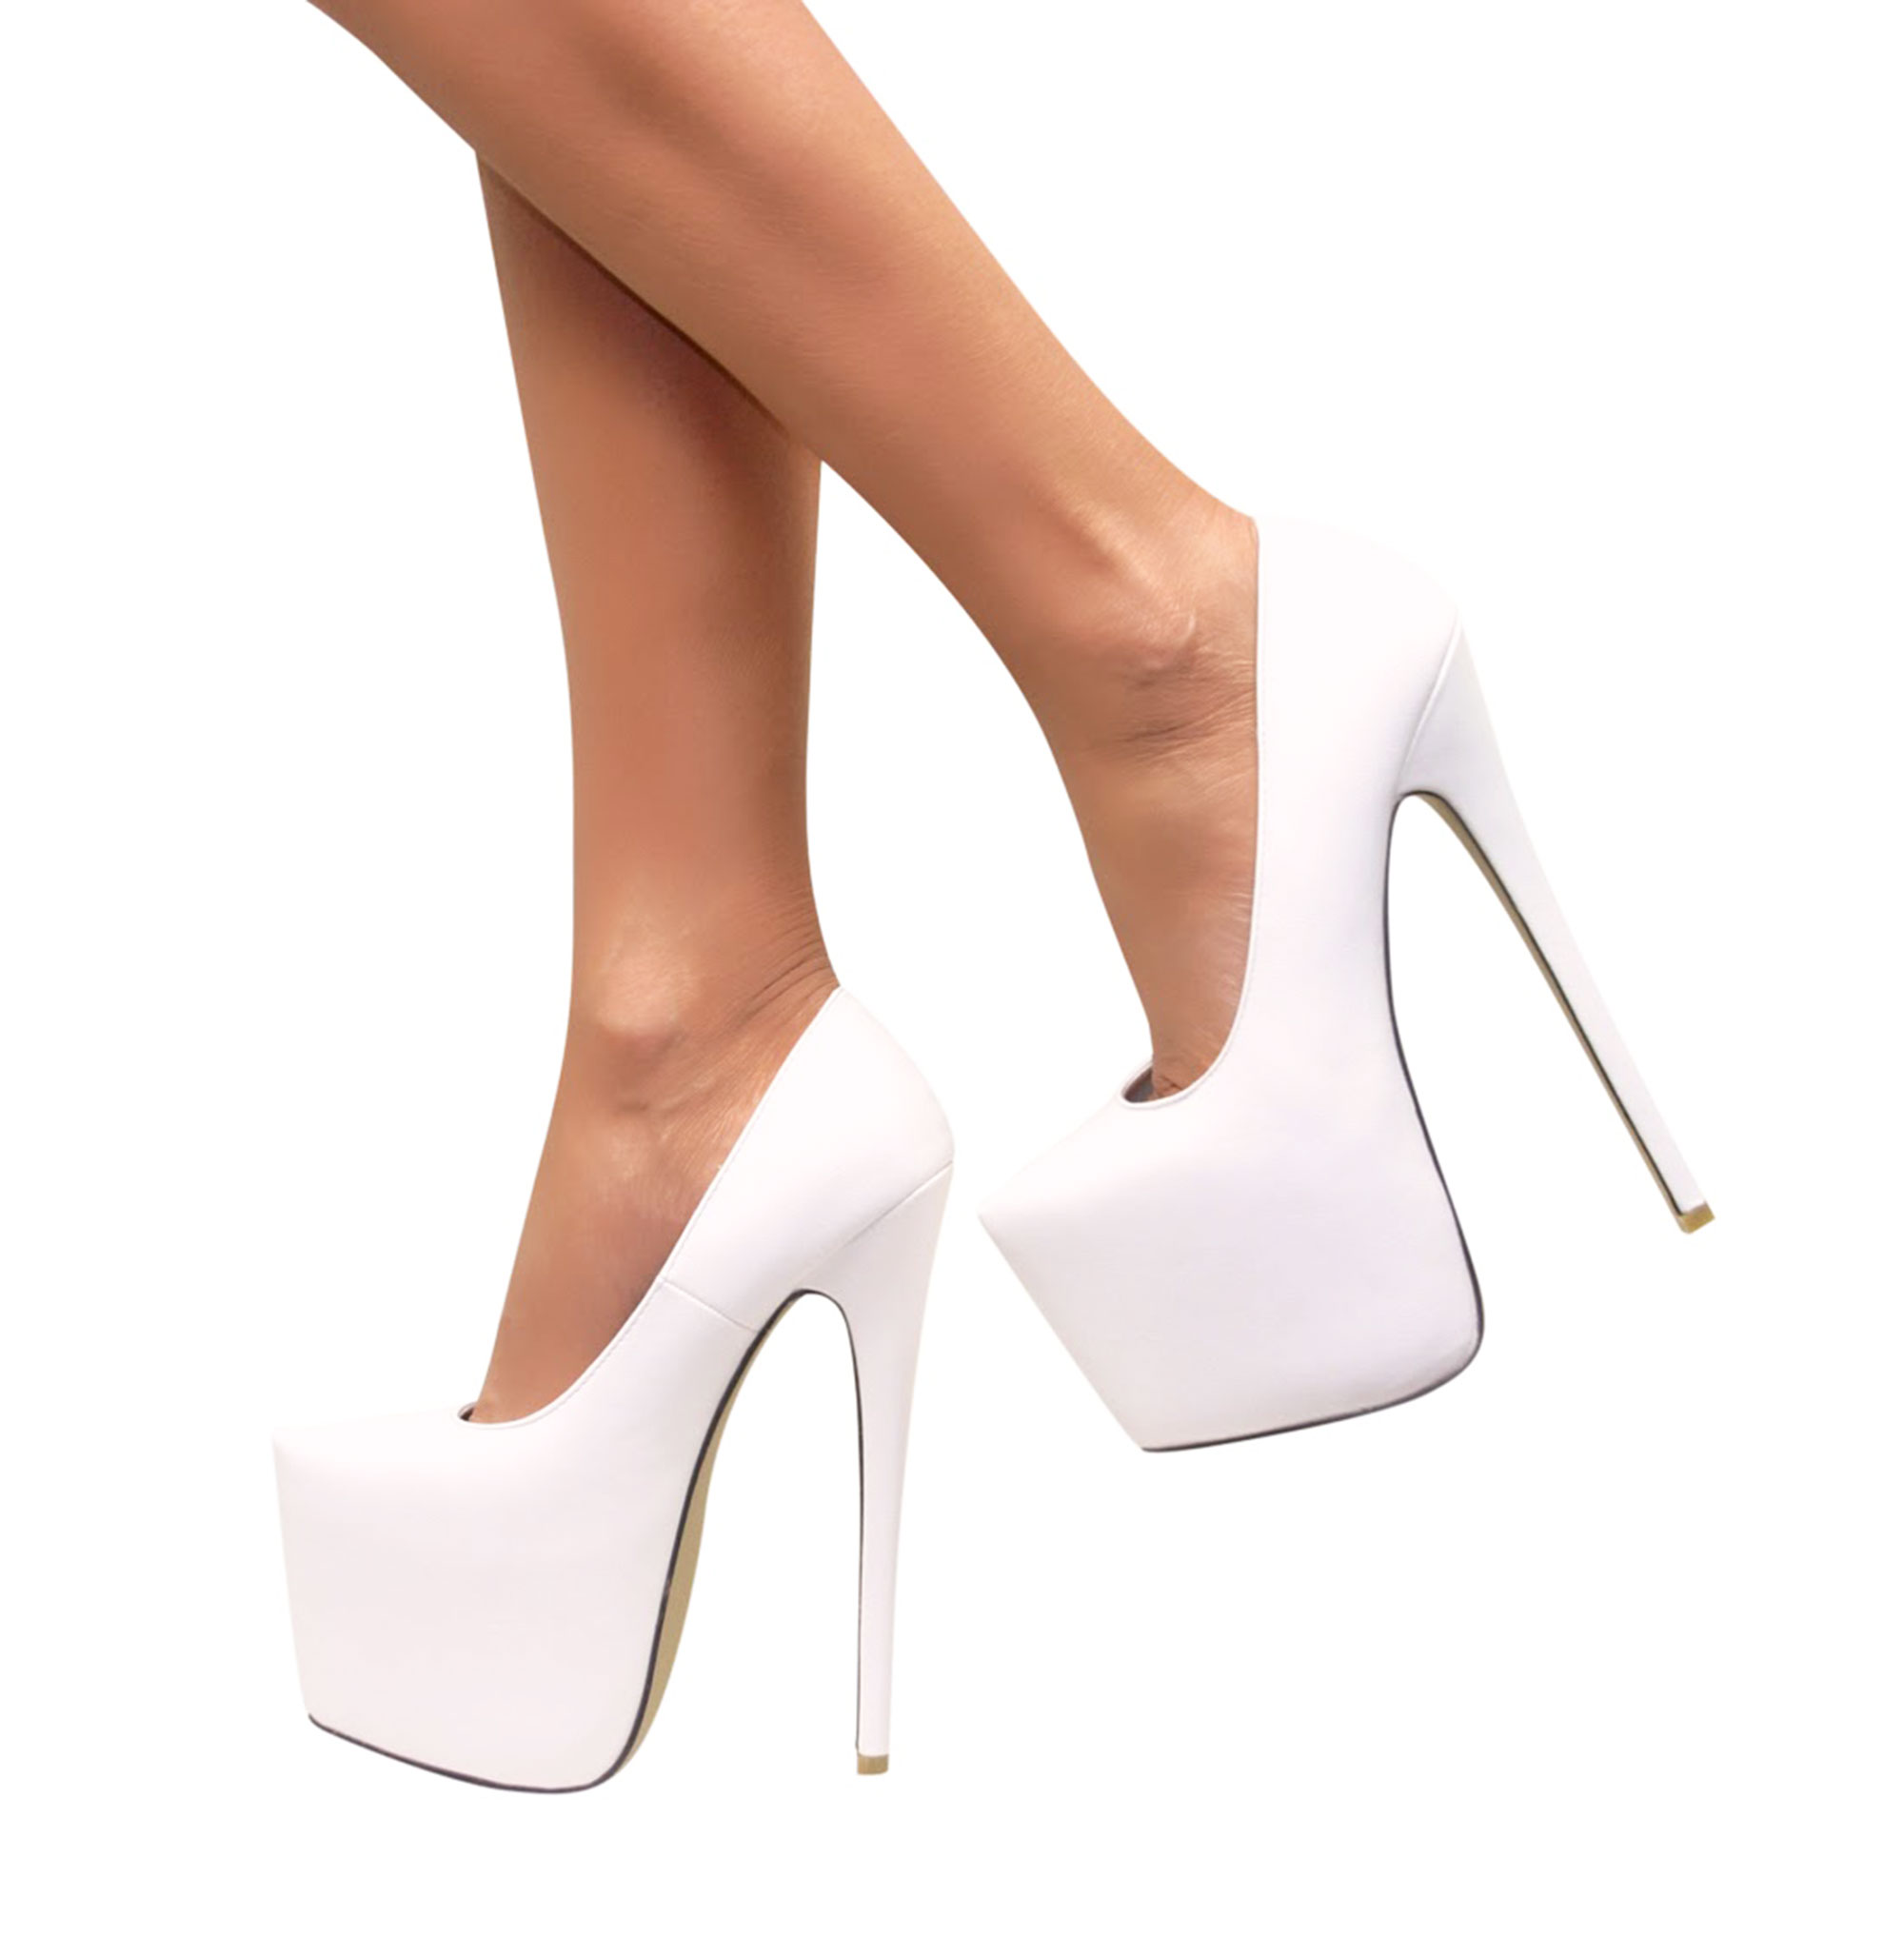 womens ladies high heels pointed toe concealed platform party court shoes size ebay. Black Bedroom Furniture Sets. Home Design Ideas